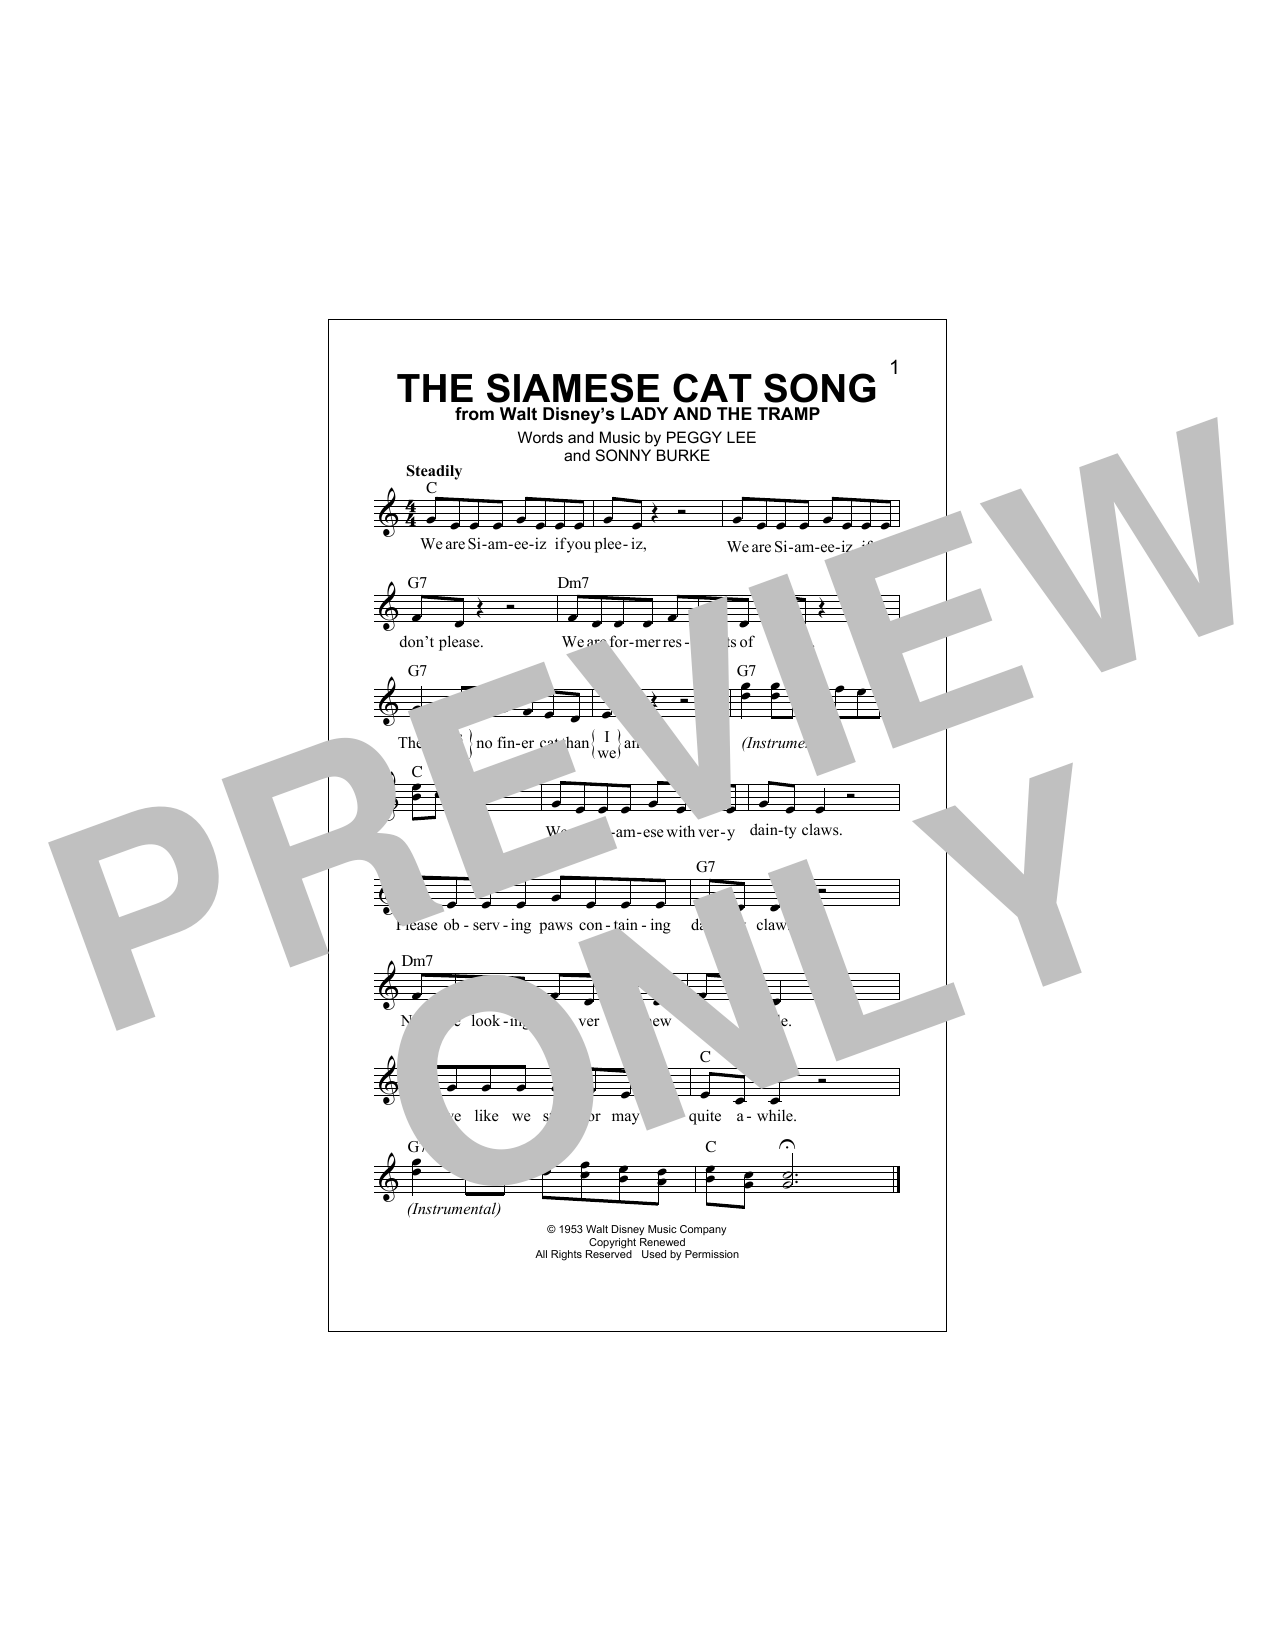 The Siamese Cat Song Sheet Music